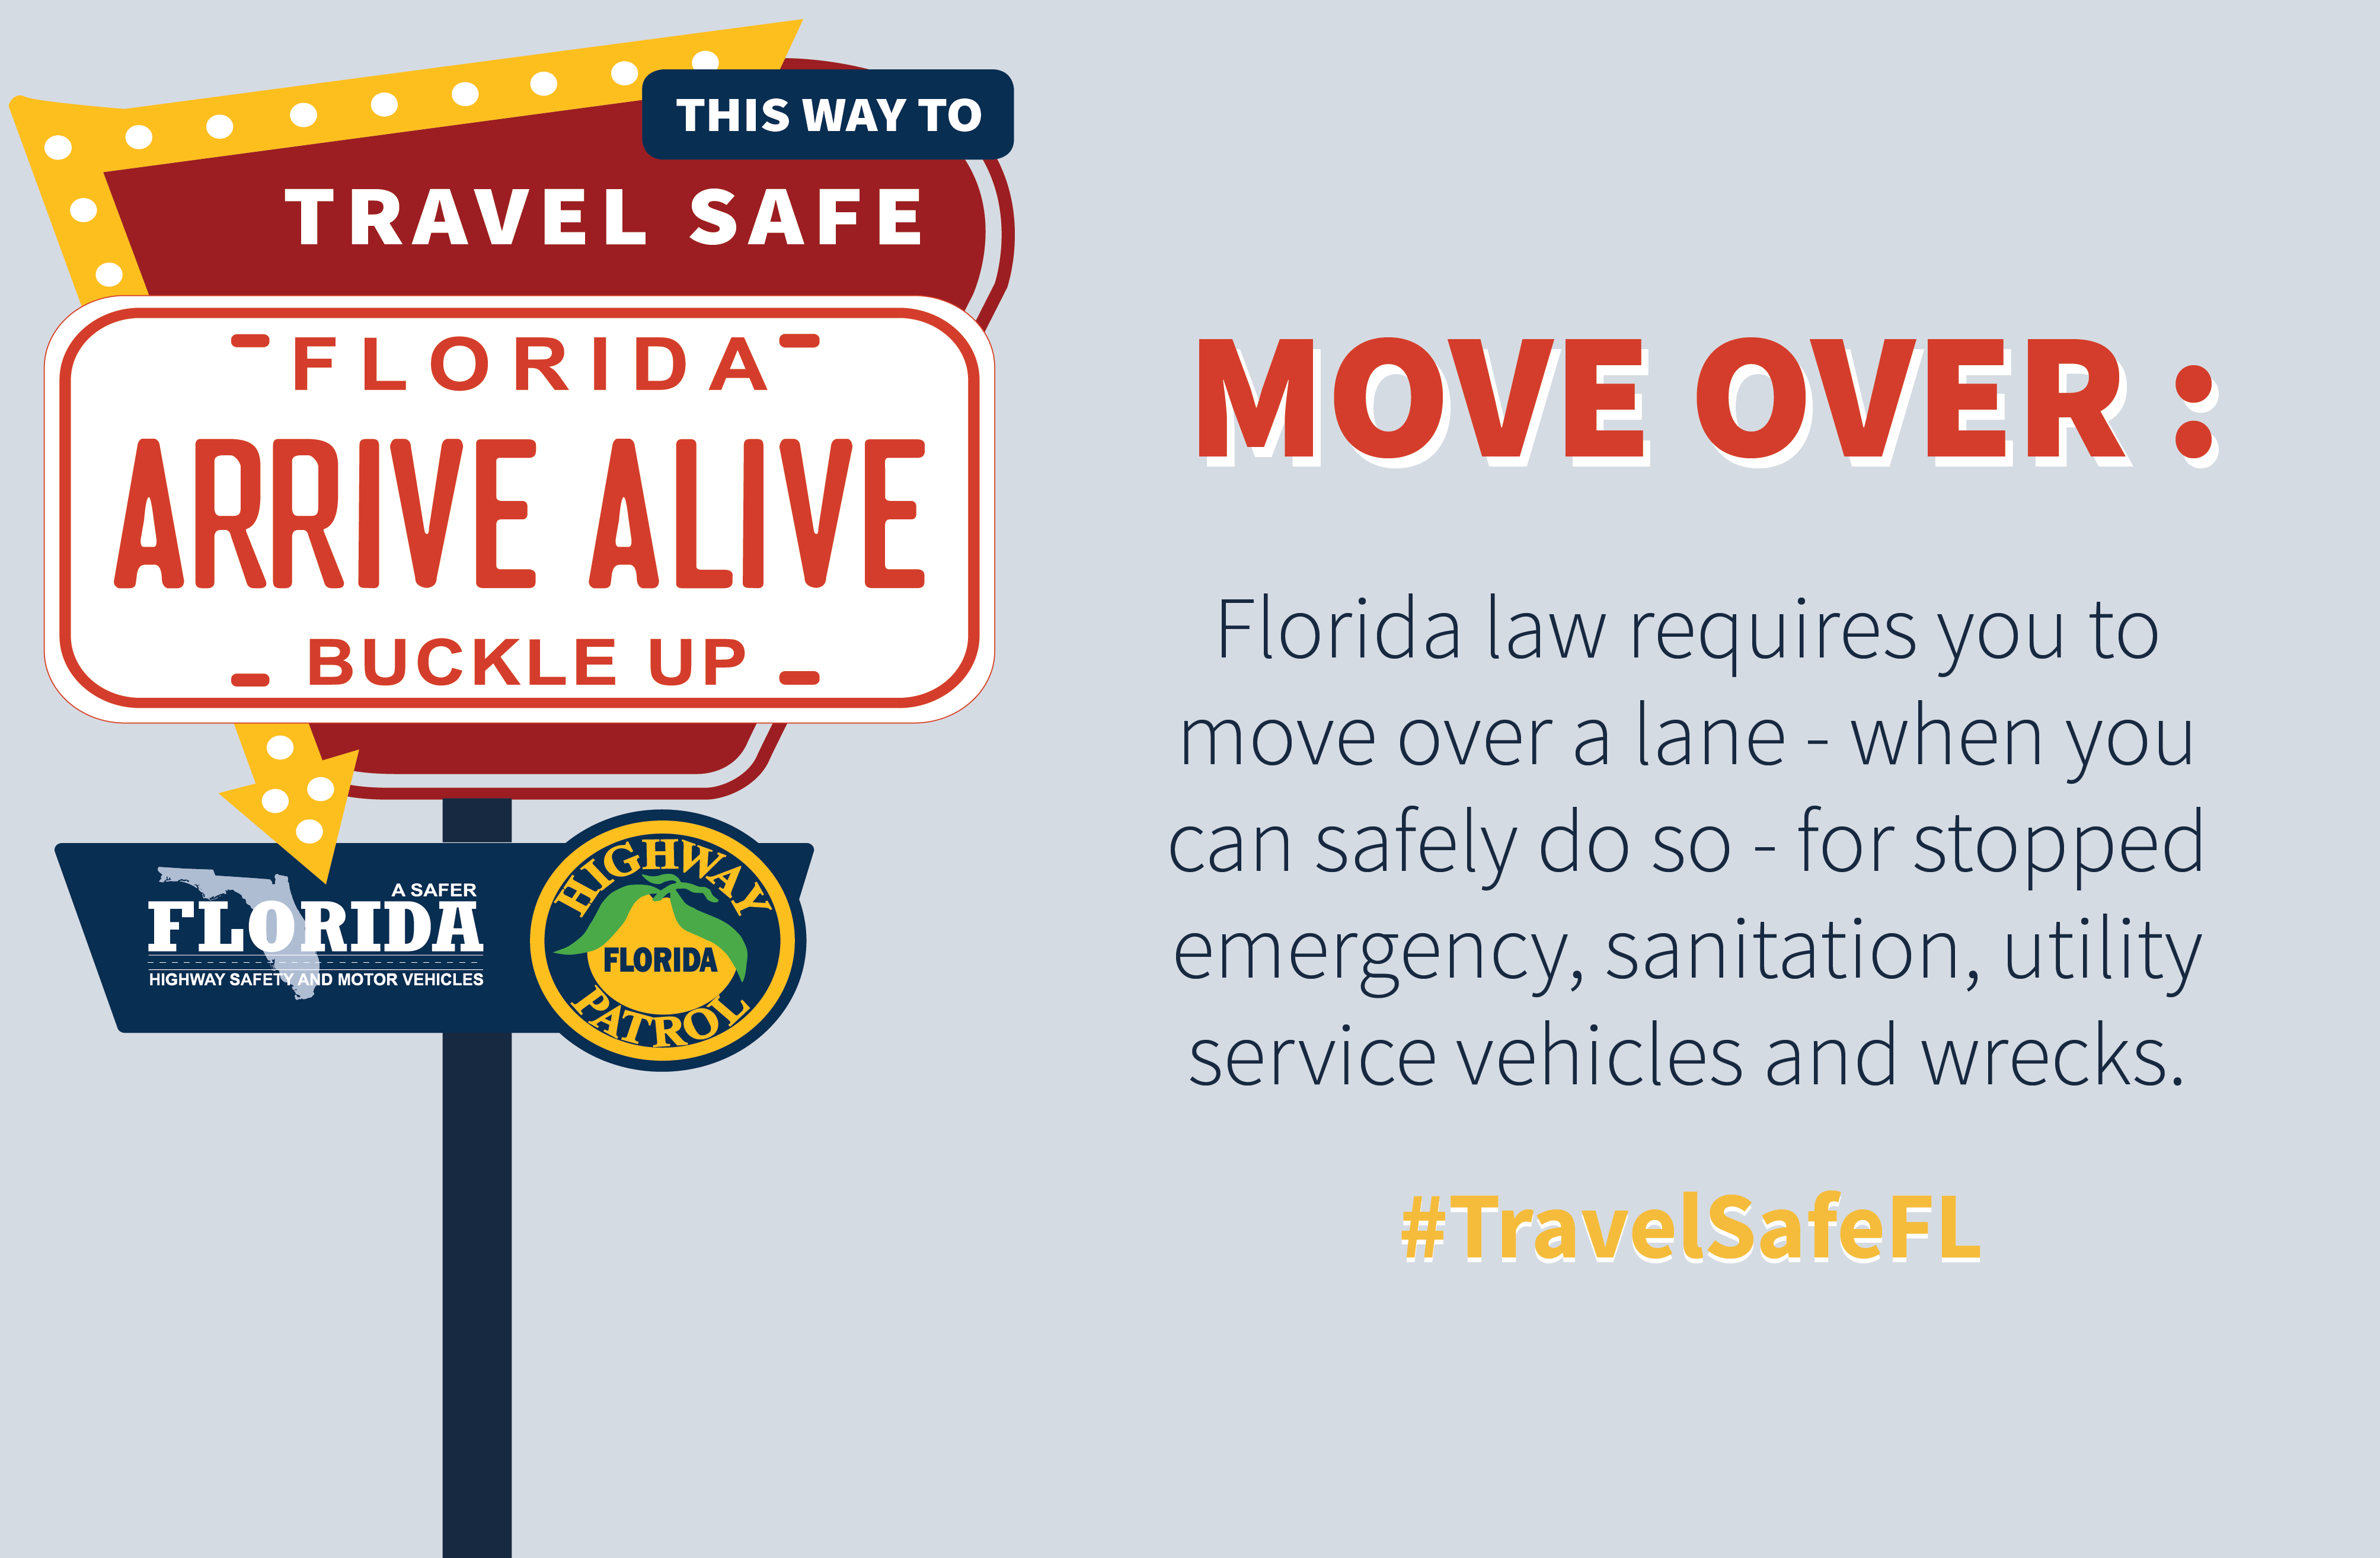 Vacation Holiday Travel Tips Florida Highway Safety And Motor Vehicles